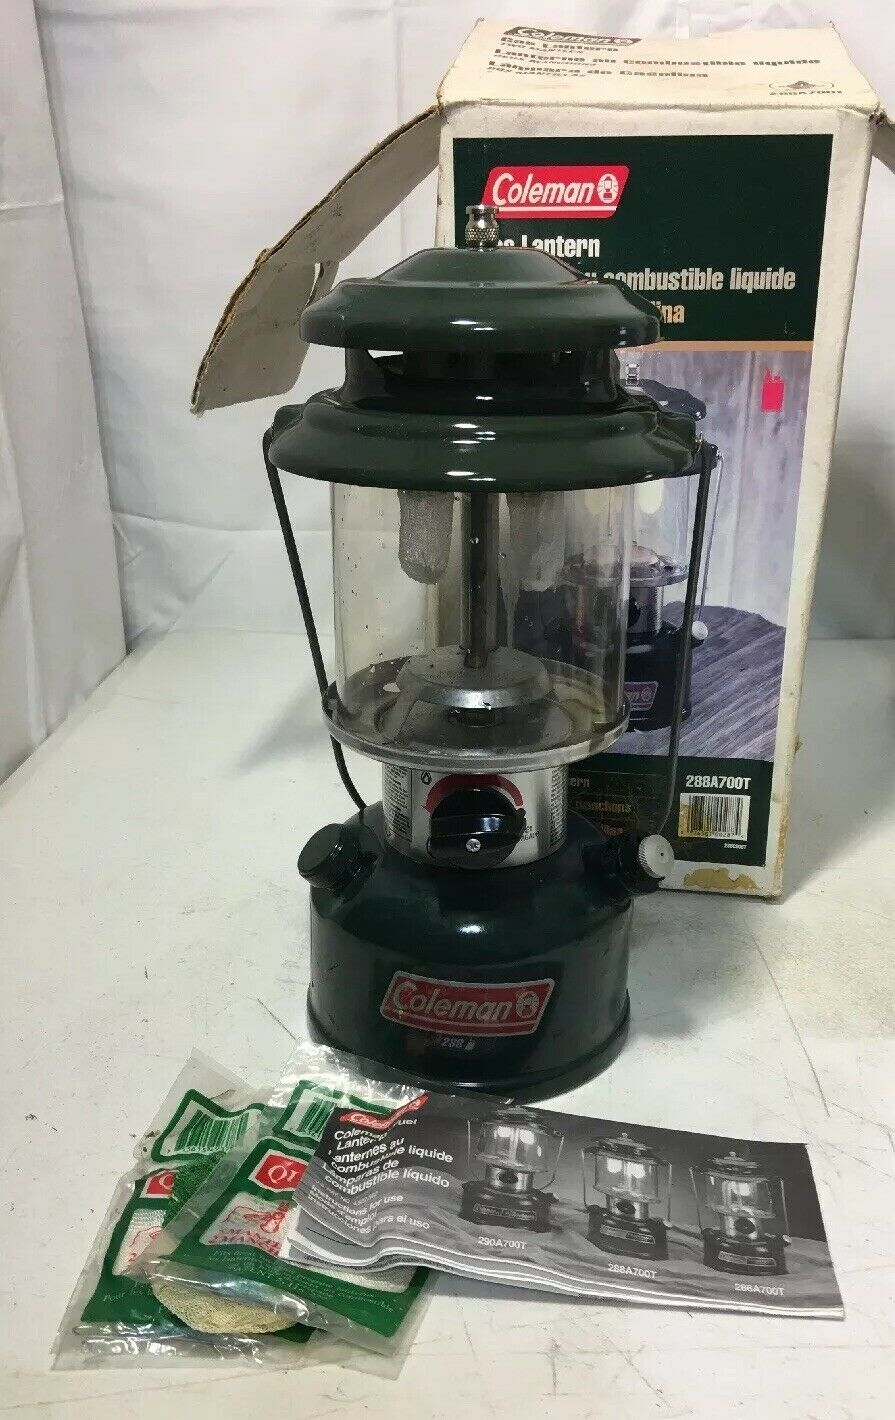 VINTAGE COLEMAN 288A DOUBLE MANTLE LANTERN DATED 3  99 WITH BOX AND PAPERWORK  new style